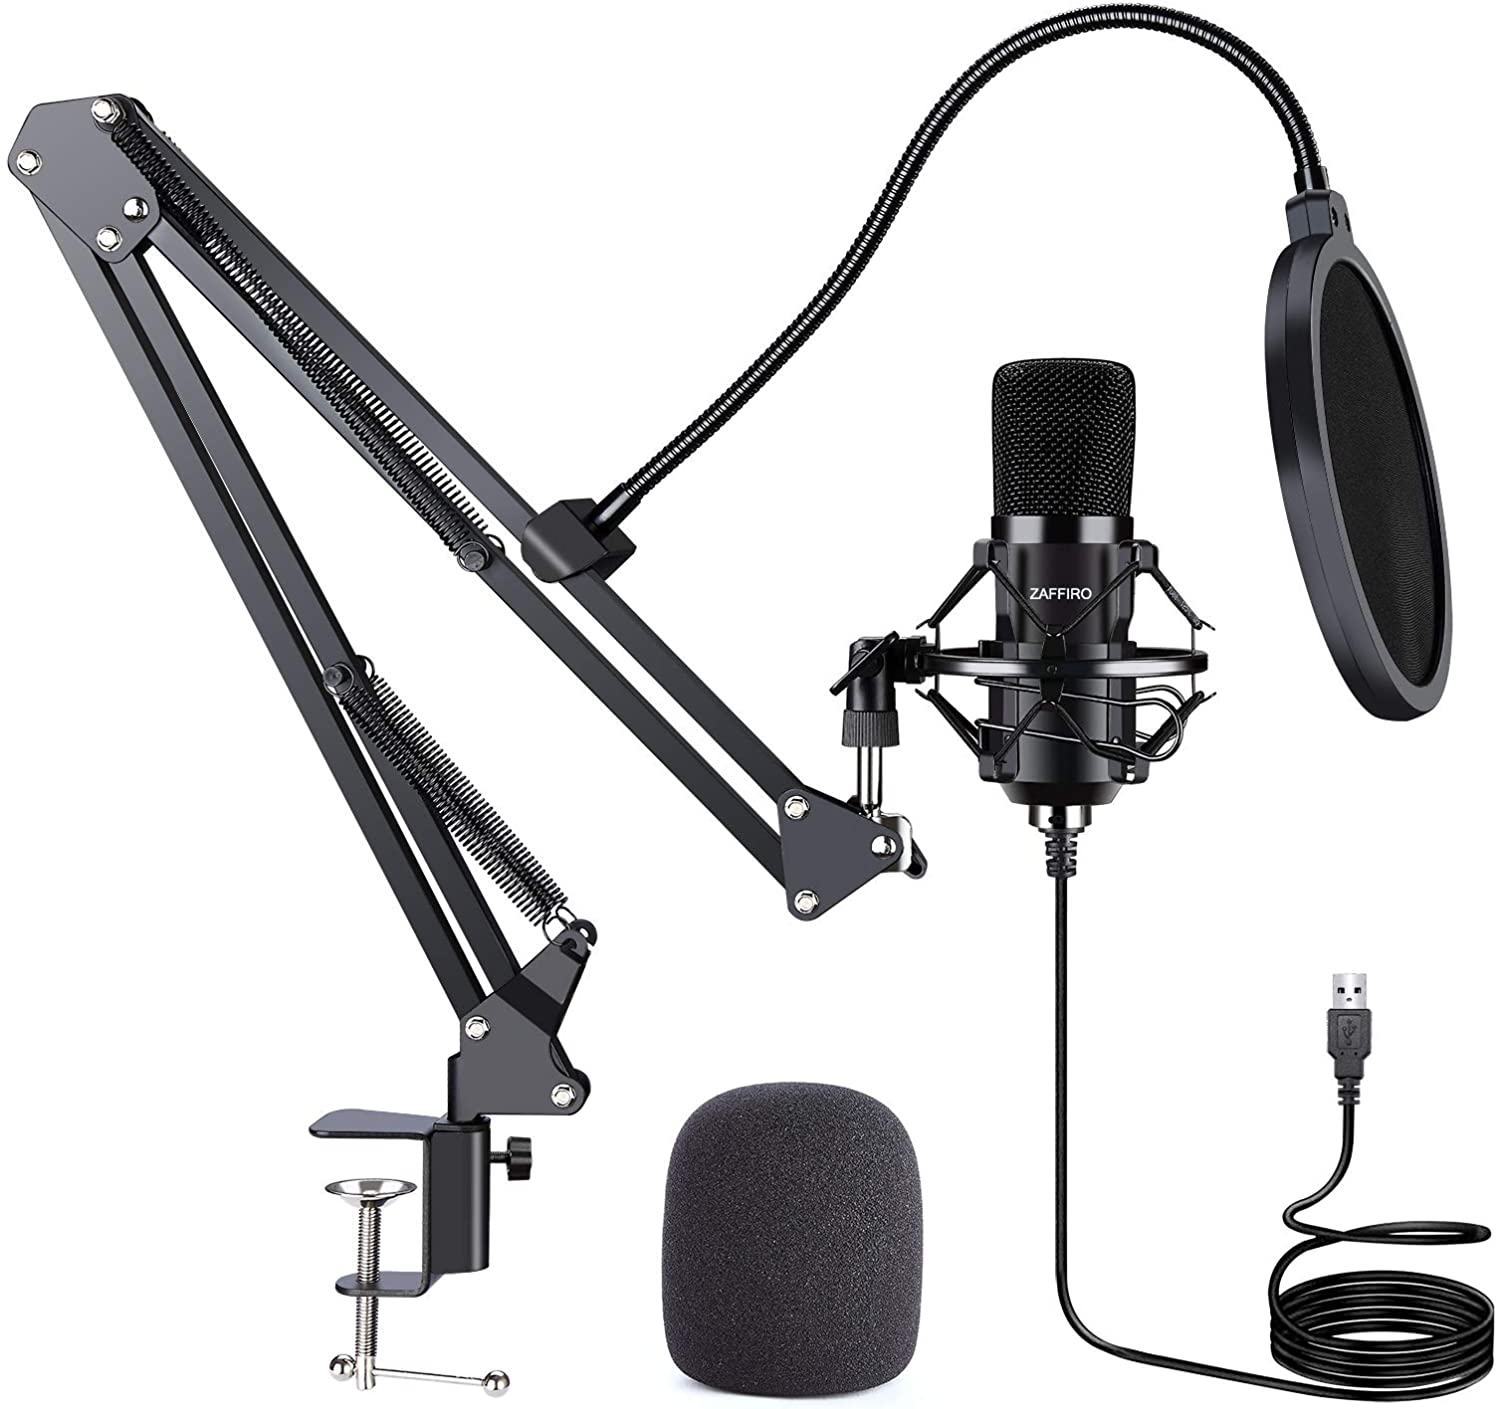 USB Streaming Podcast PC Microphone Computer Cardioid Condenser Microphones Kit with Boom Arm for Vocal Instrument Recording Gaming YouTube Karaoke, Studio Mic Compatible with Mac Laptop Desktop